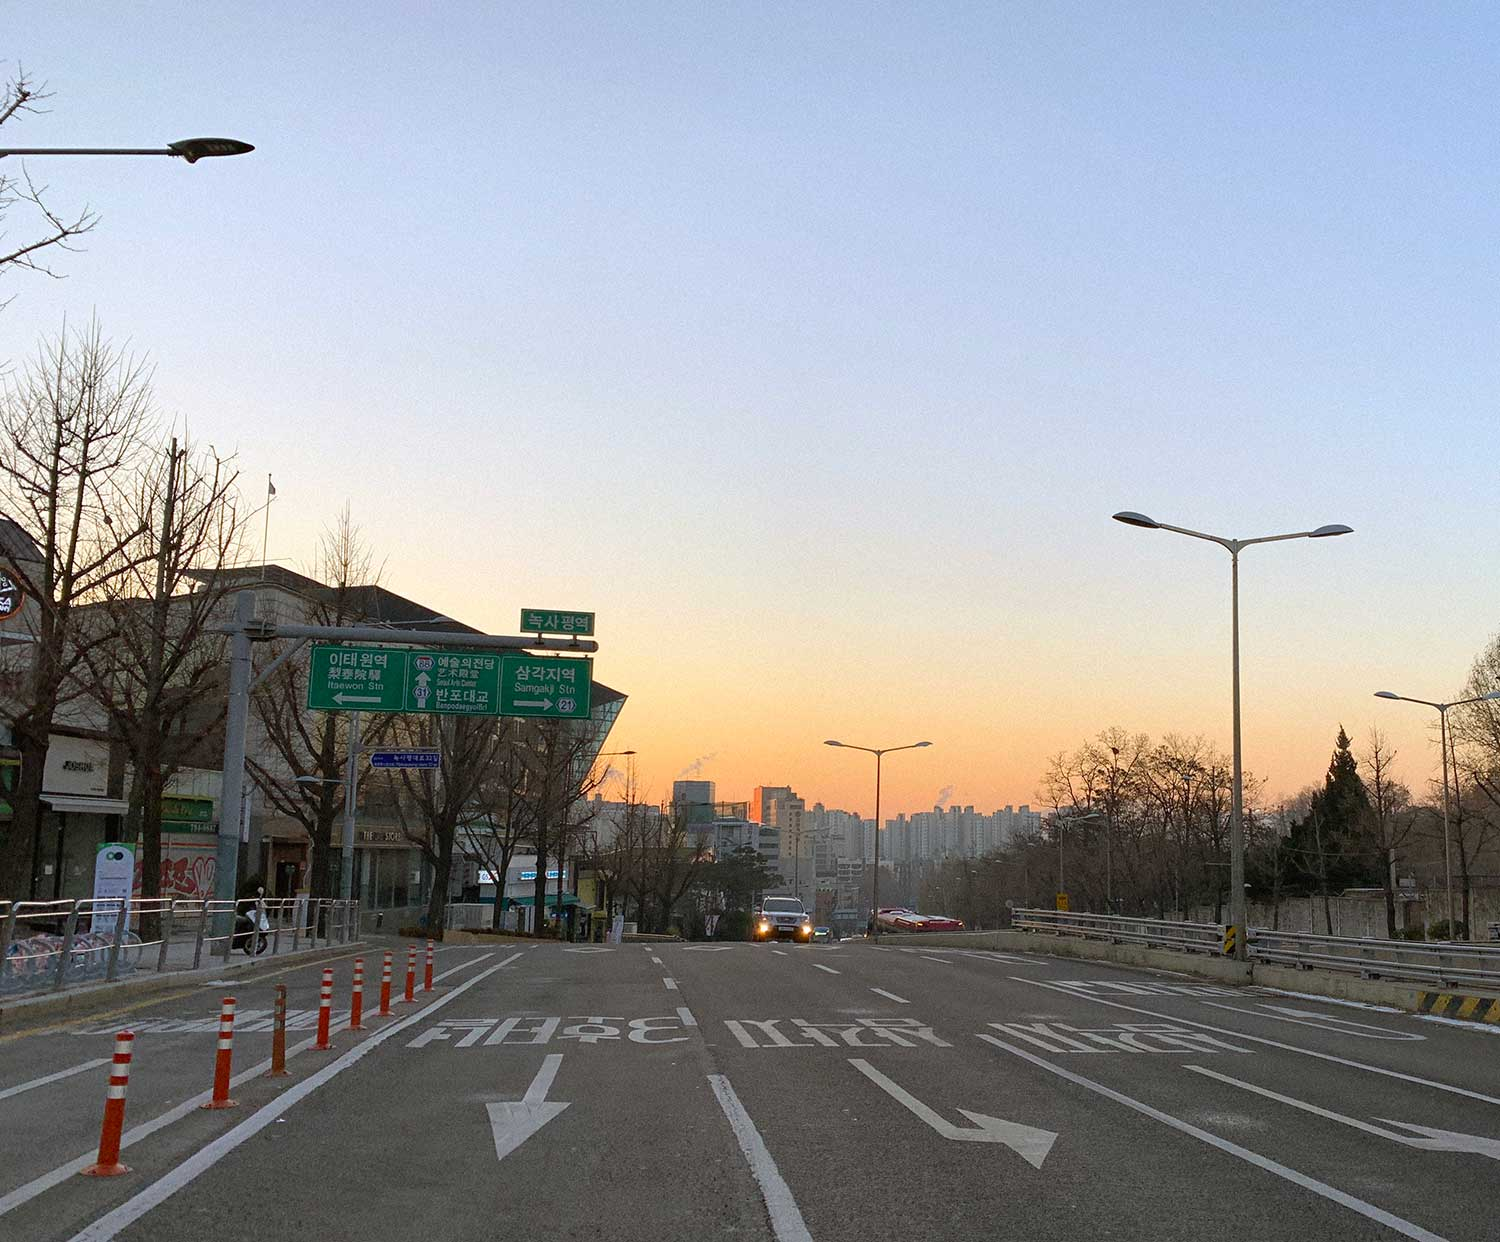 Sunrise on a street in Seoul, South Korea